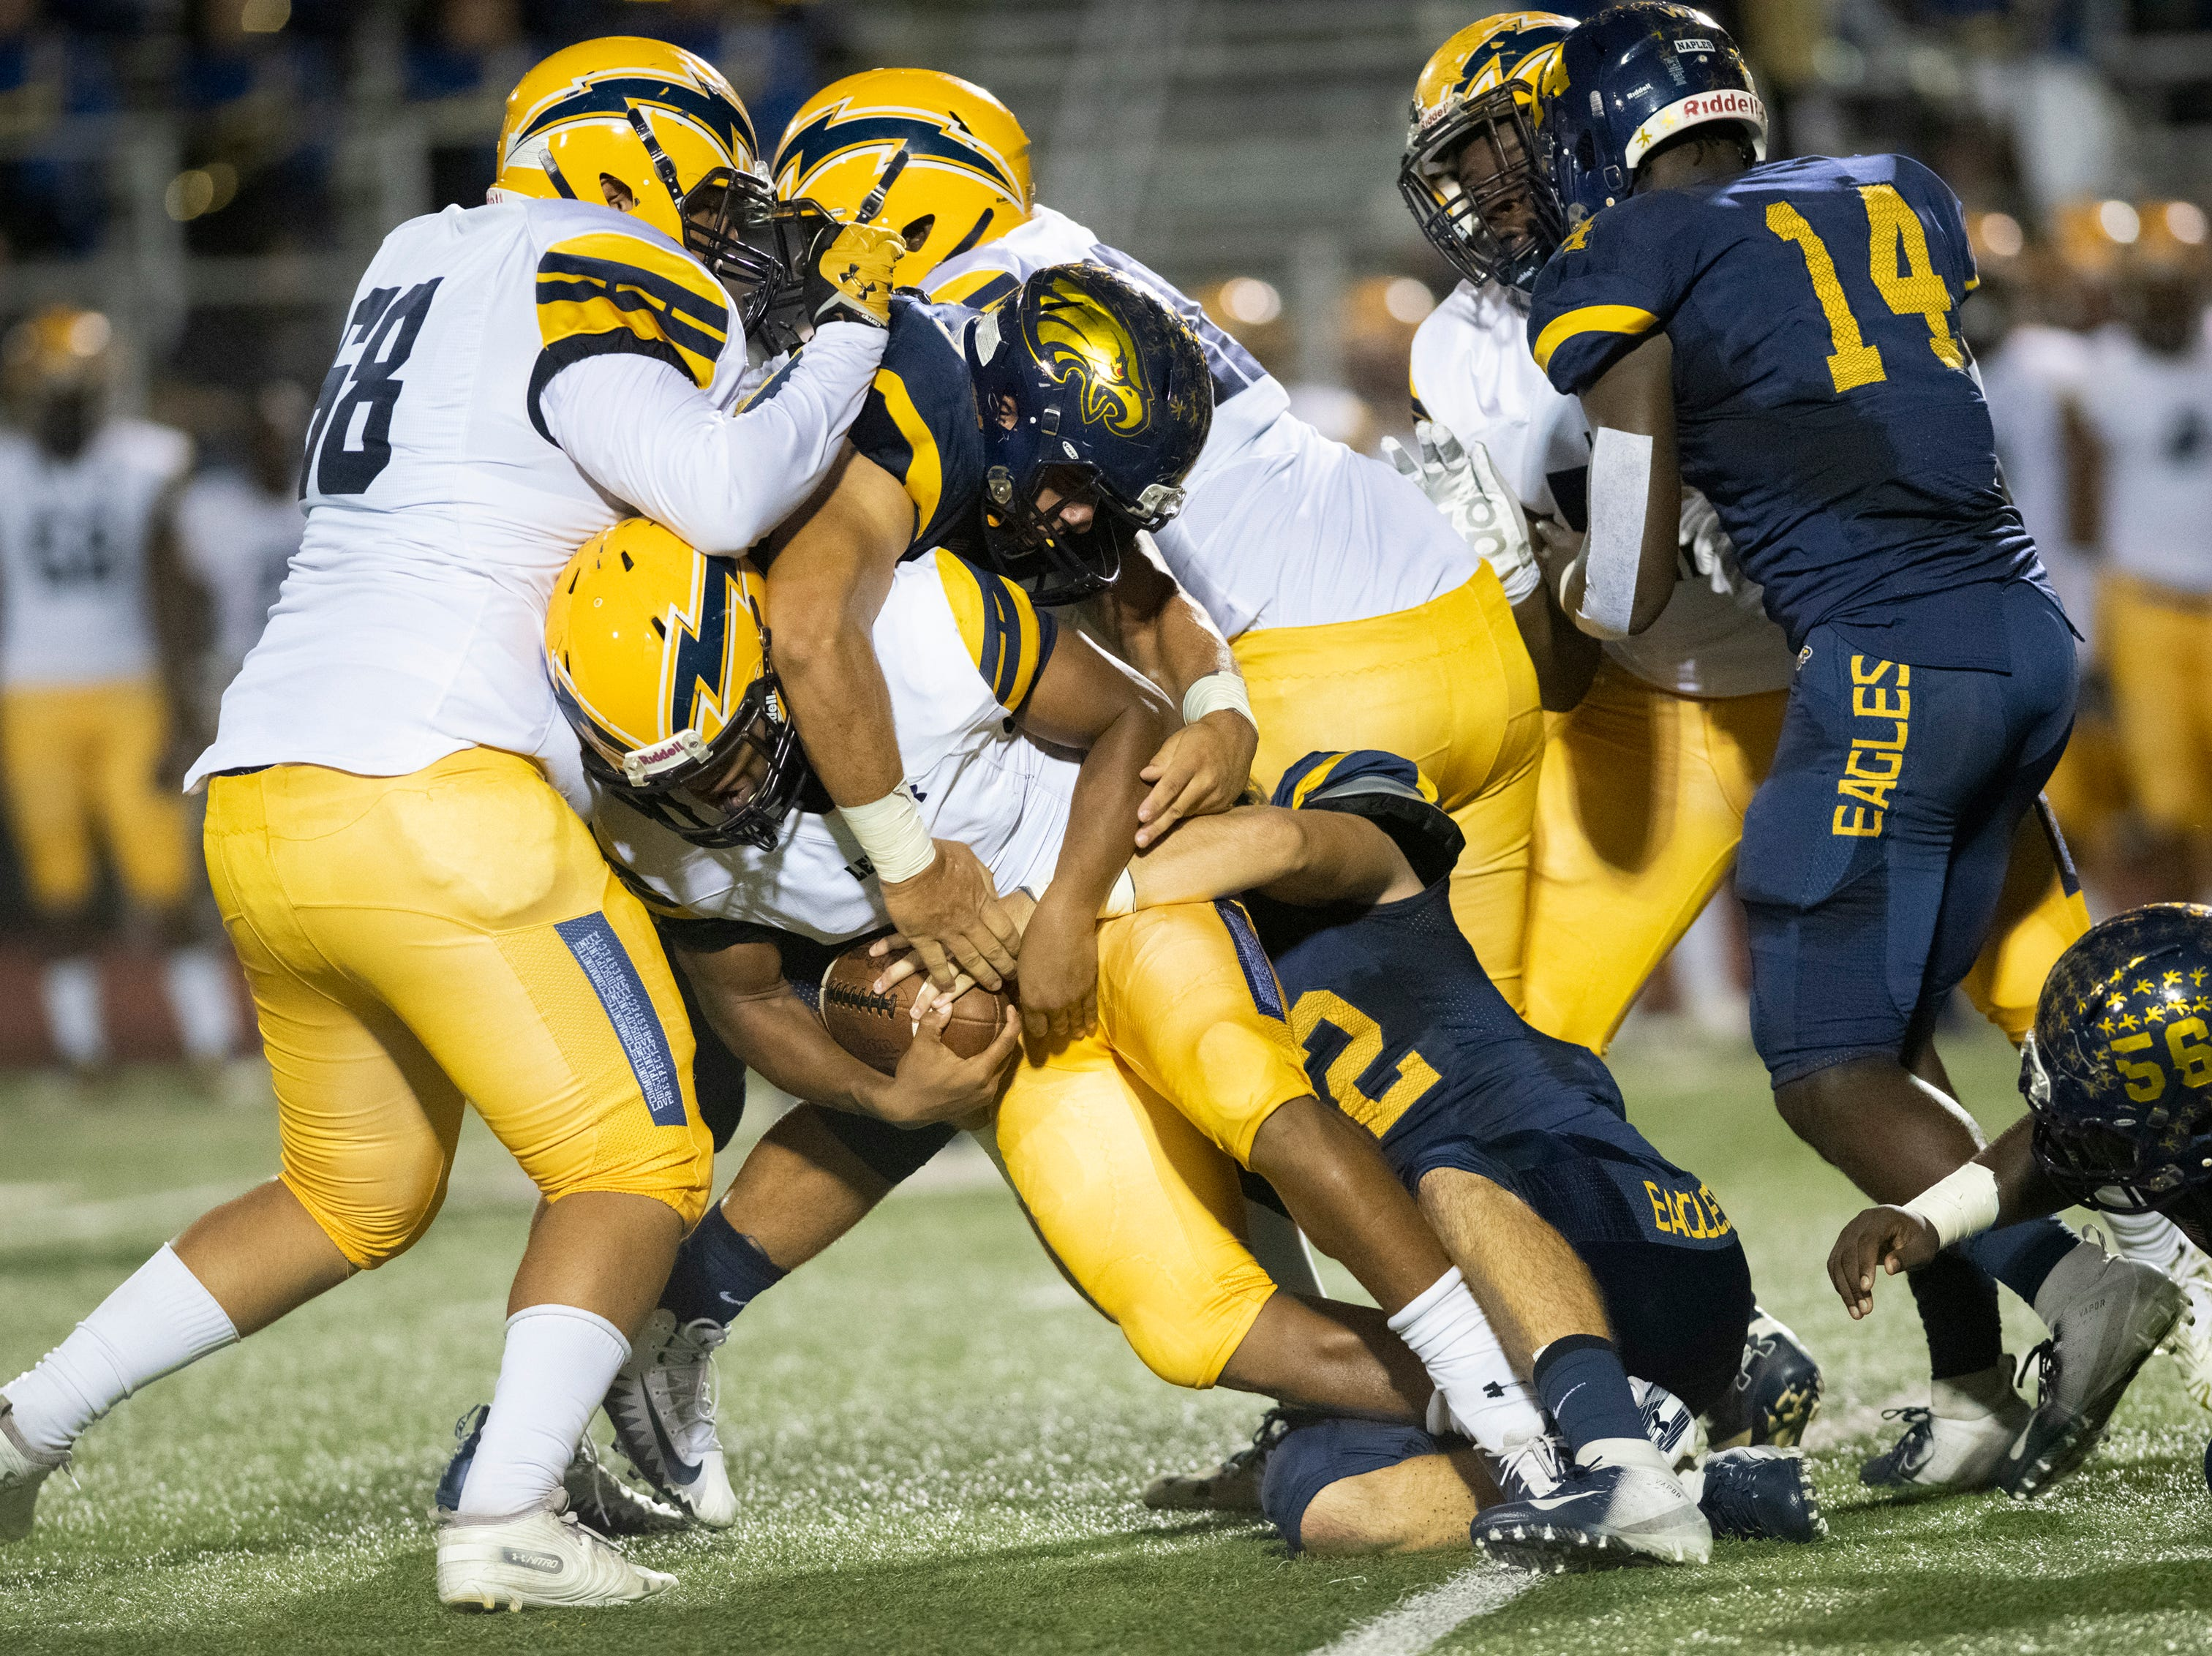 Bud Chaney of Lehigh is tackled by Naples defenders during the Class 6A regional quarterfinal playoff game at Naples High on Friday night, November 9, 2018.